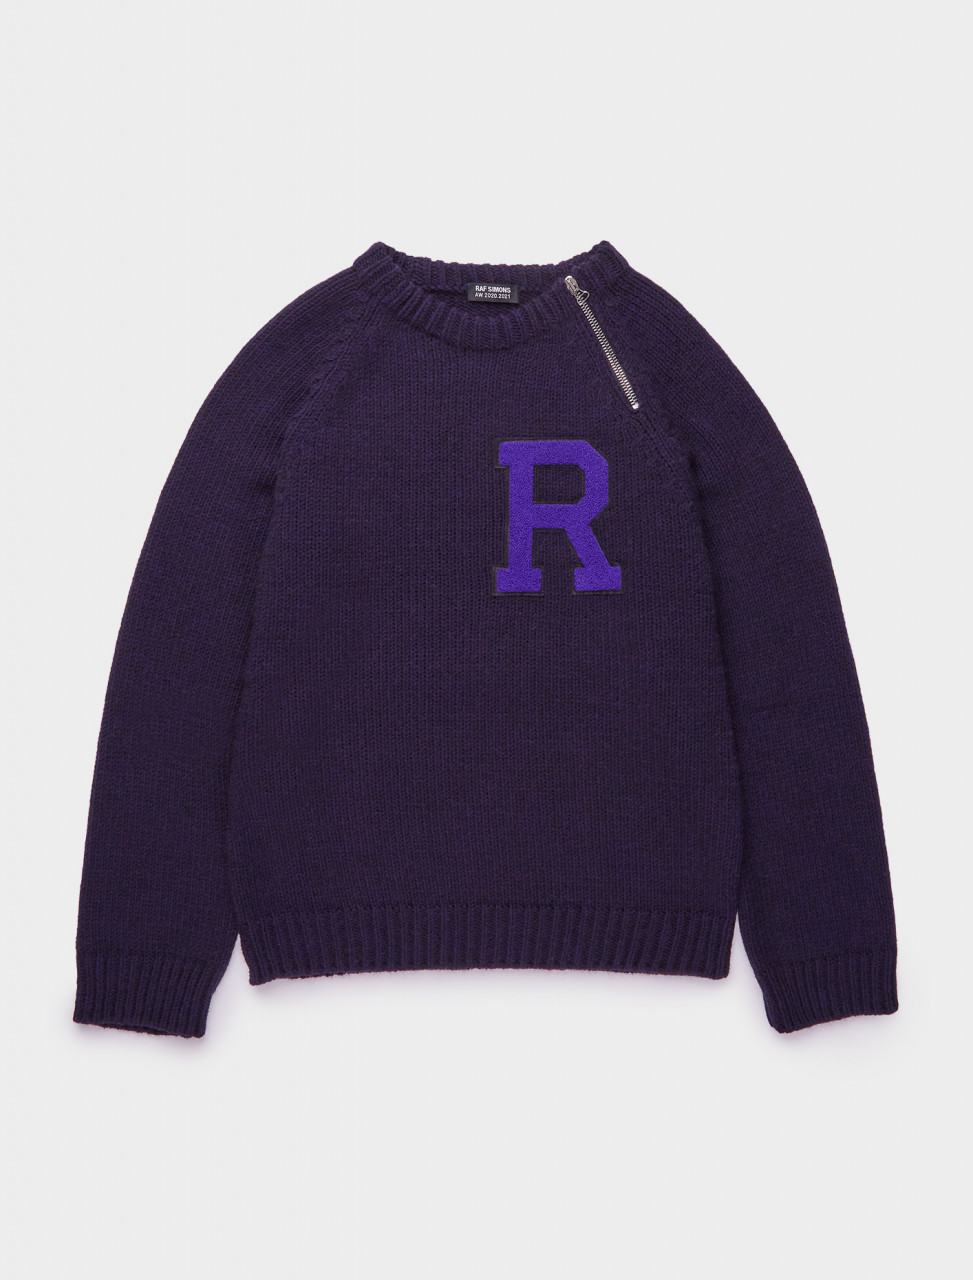 162-202-837-50005-00057 RAF SIMONS RAGLAN SWEATER W LETTER BADGE